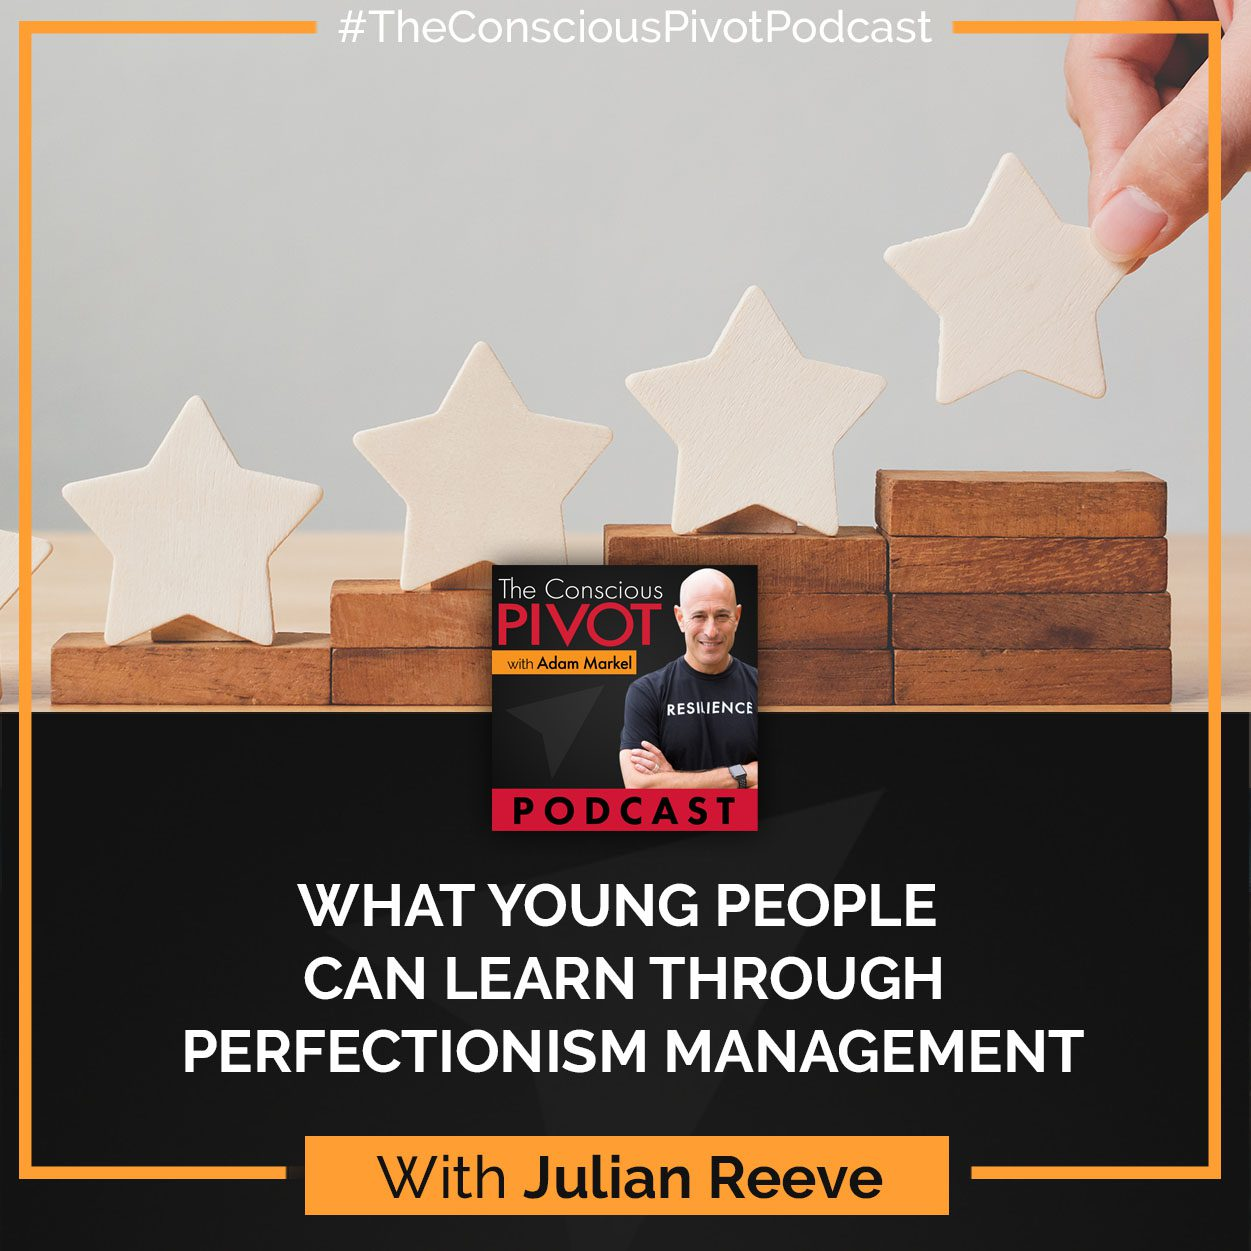 Julian Reeve: What Young People Can Learn Through Perfectionism Management